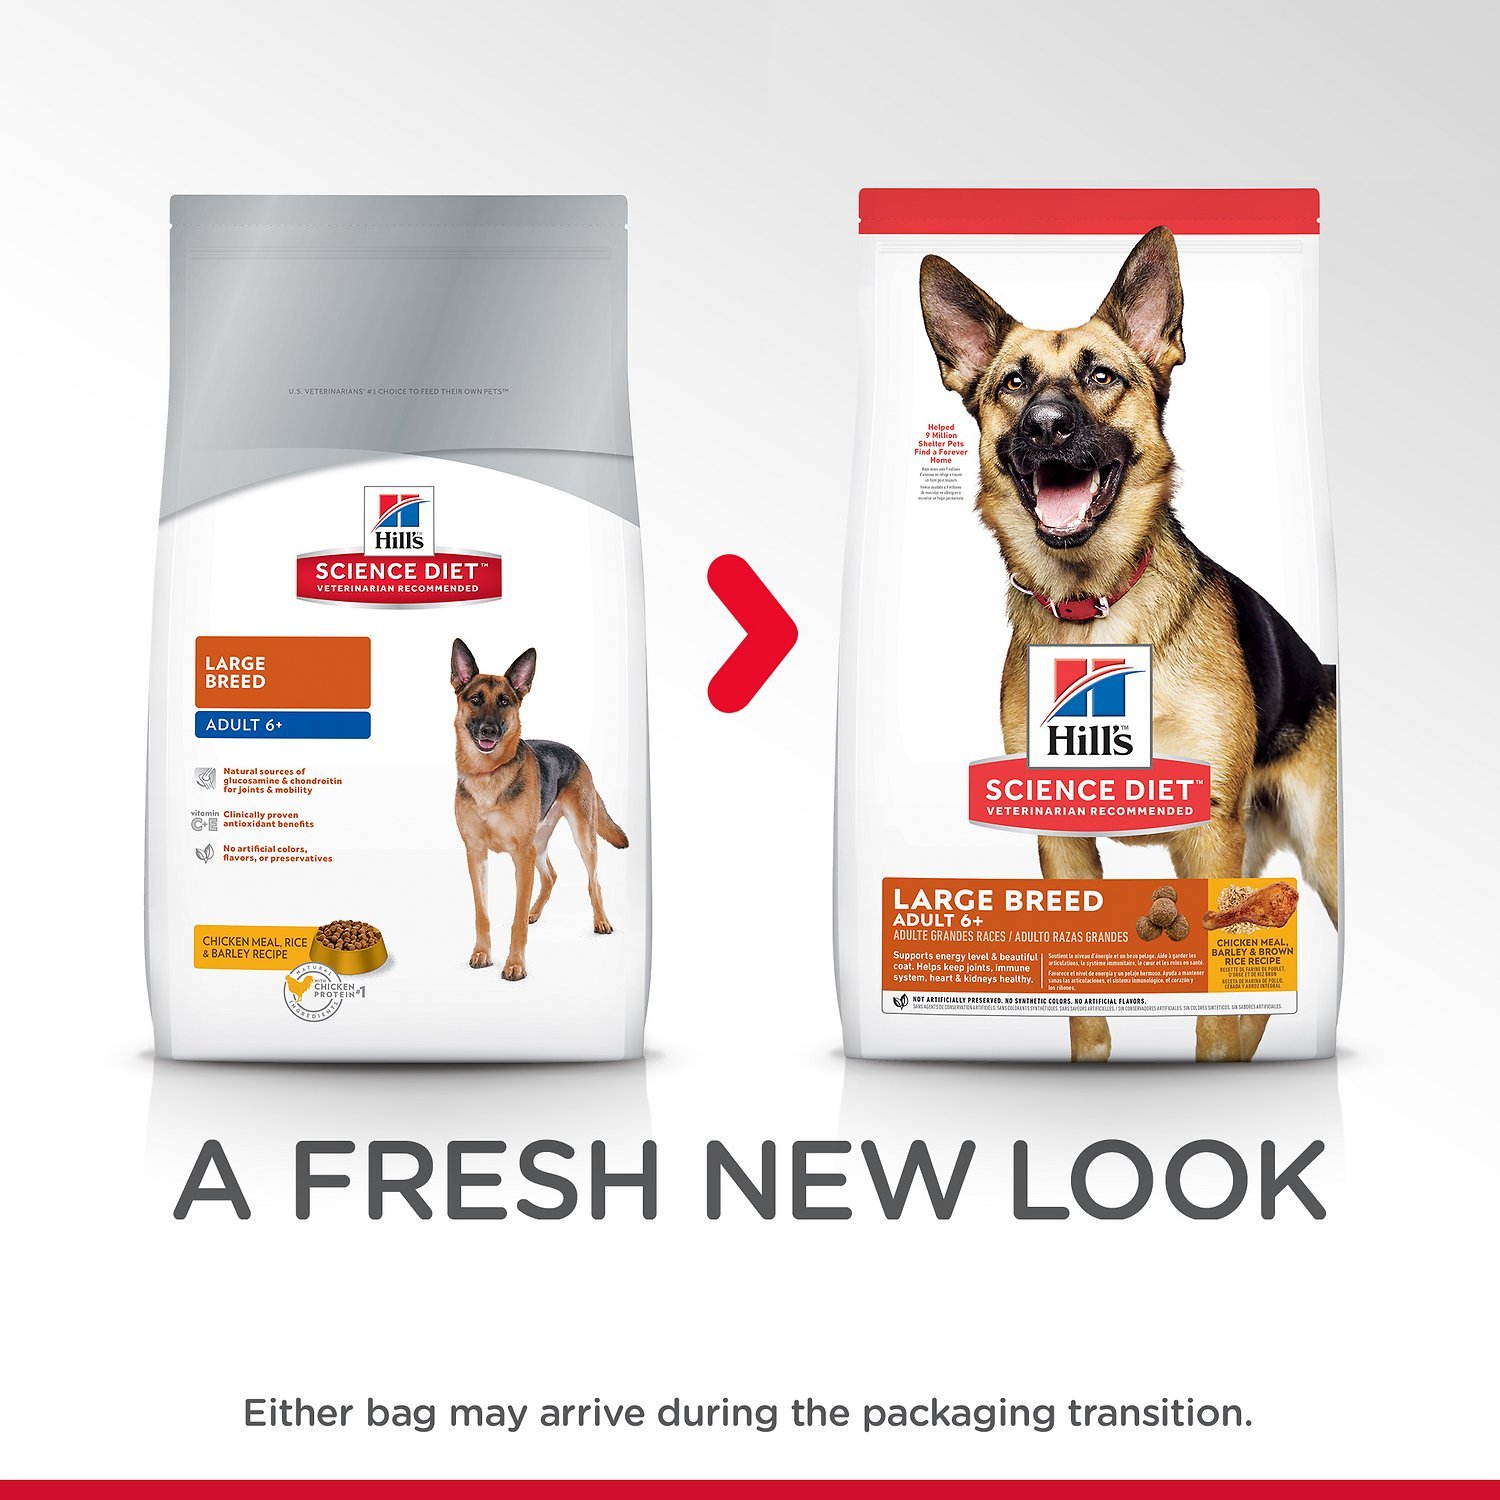 dog breed adult diet science hills food hill dry bag chewy lb mature